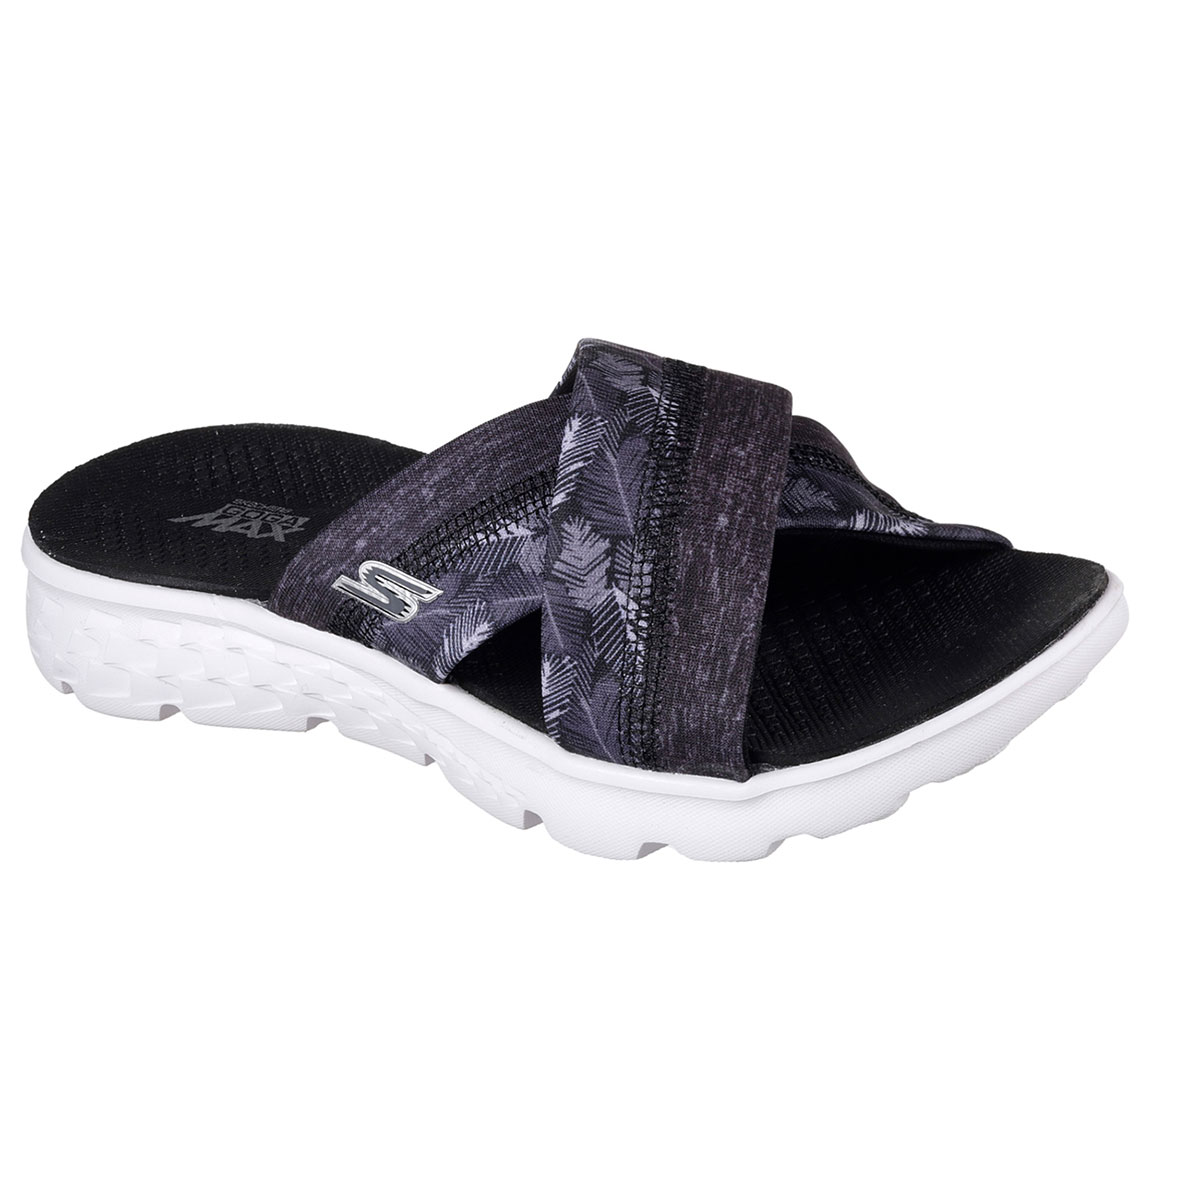 Skechers 2017 Womens On The Go 400 Tropical Sandals